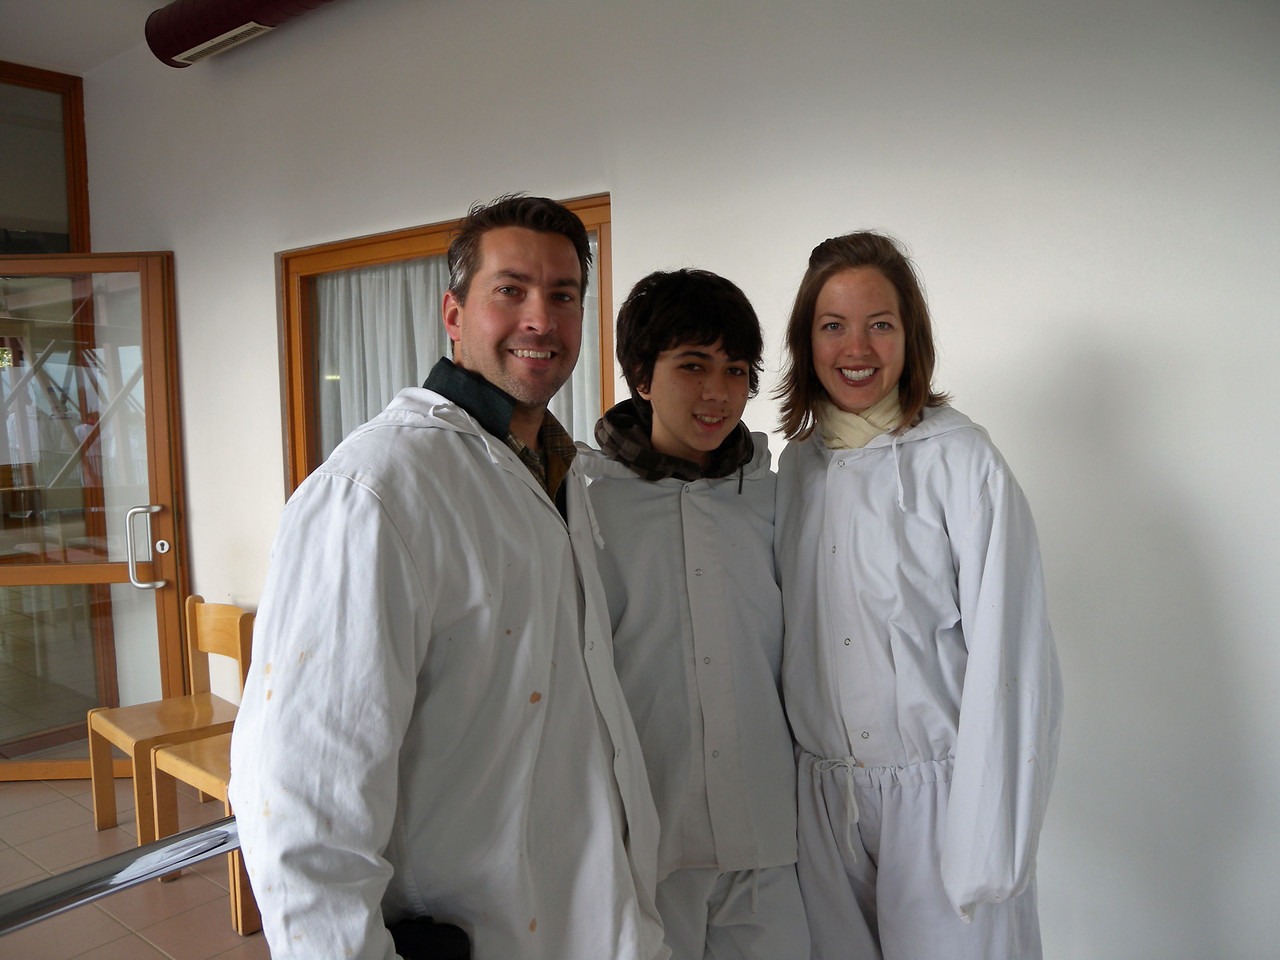 Salzburg means Salt town. And so we had to go to the Salt mine! They made us wear these pajamas. Sehr gut = very niiiiice